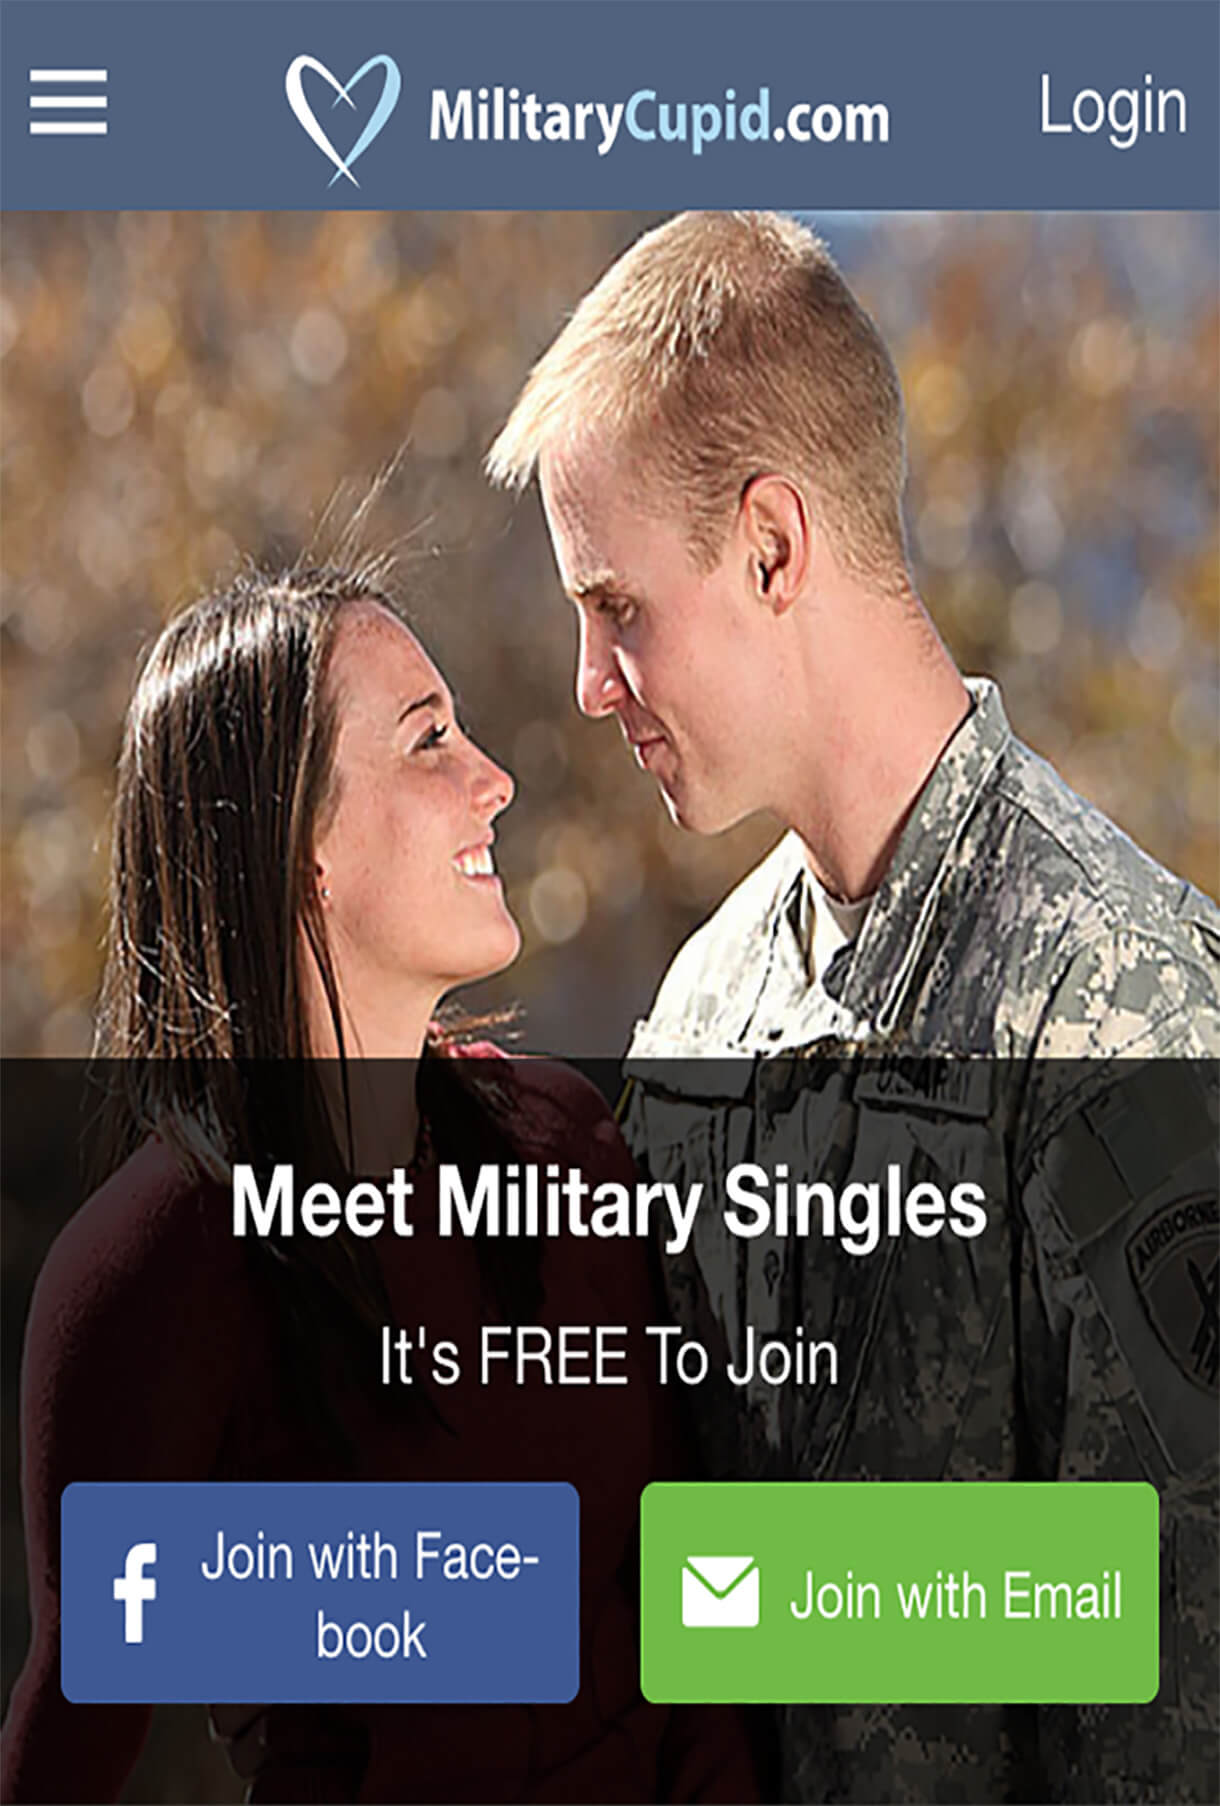 Military Cupid Mobile Application